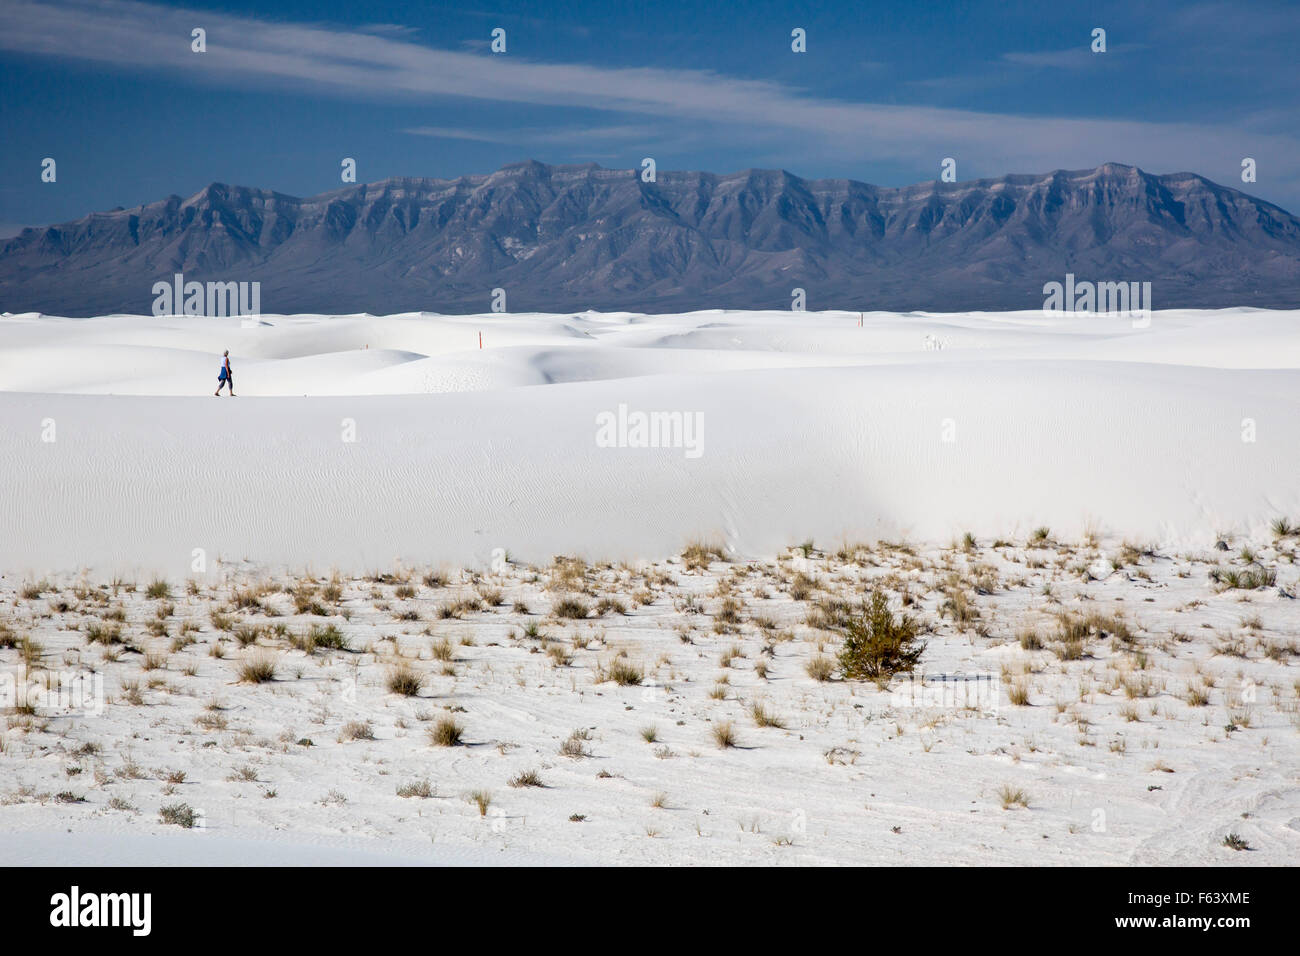 Alamogordo, New Mexico - A woman hiking in White Sands National Monument. - Stock Image